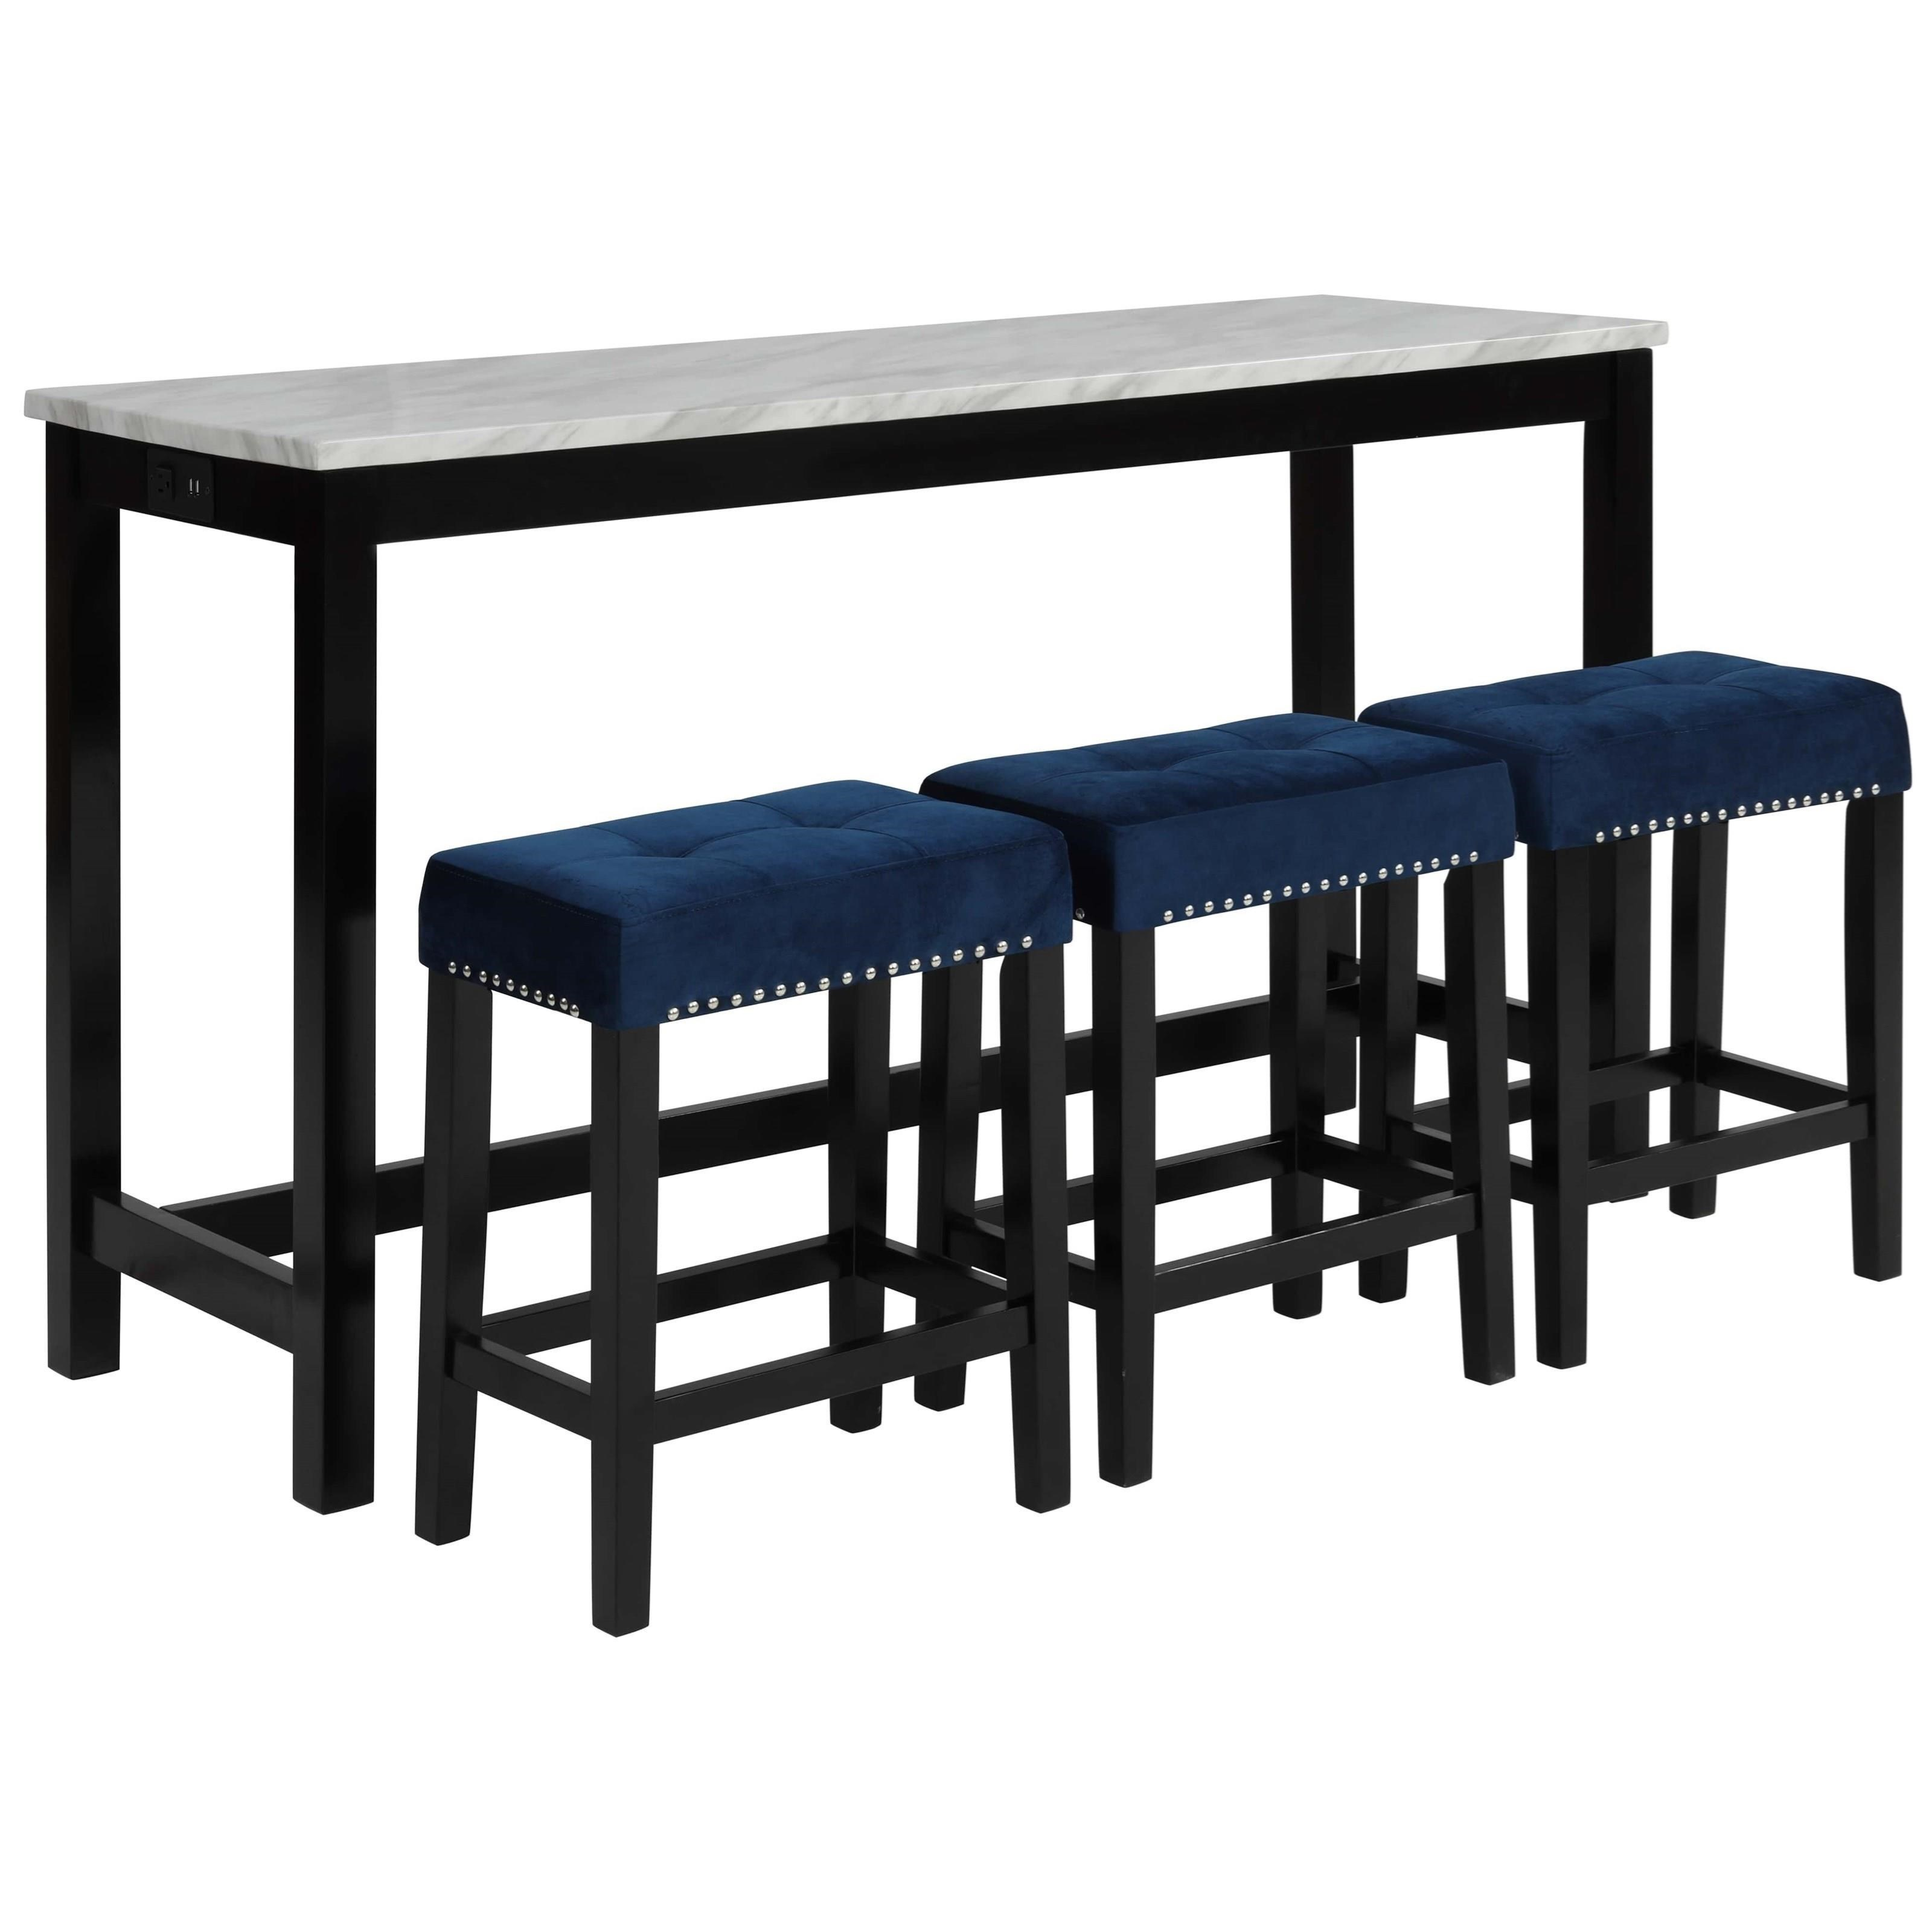 Celeste Theater Bar Table W/ 3 Stools by New Classic at Beds N Stuff